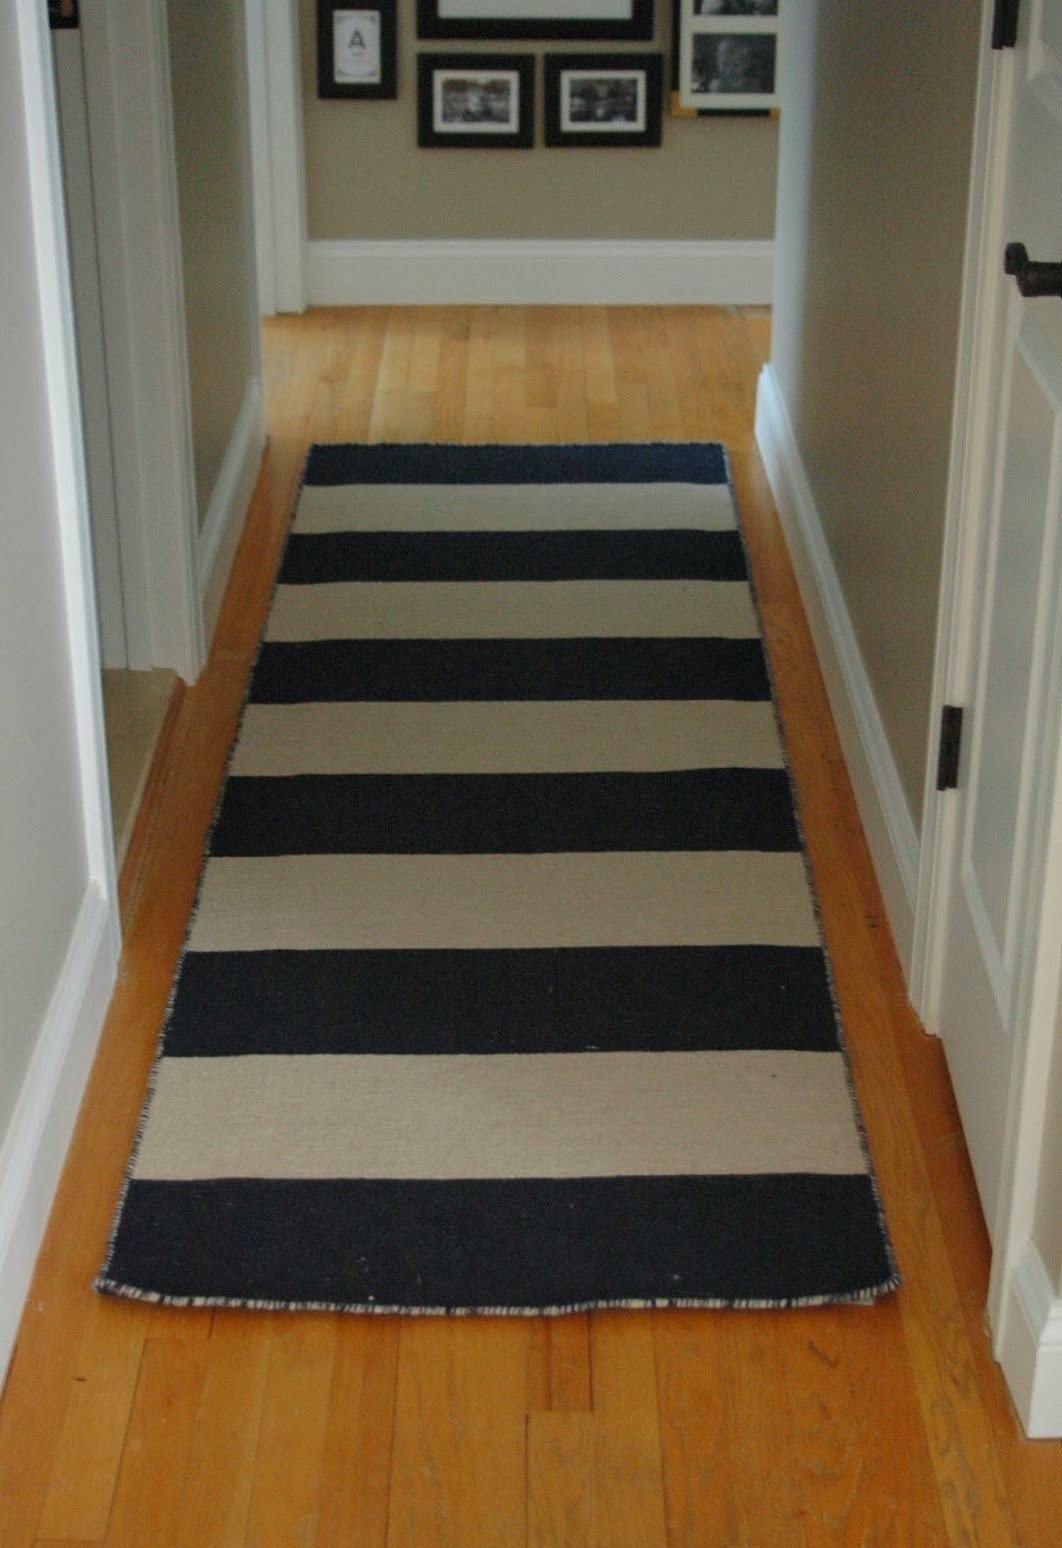 Interior Extra Long Hall Runner Rugs With Traditional Aged Pertaining To Hallway Runners Rugs (#15 of 20)